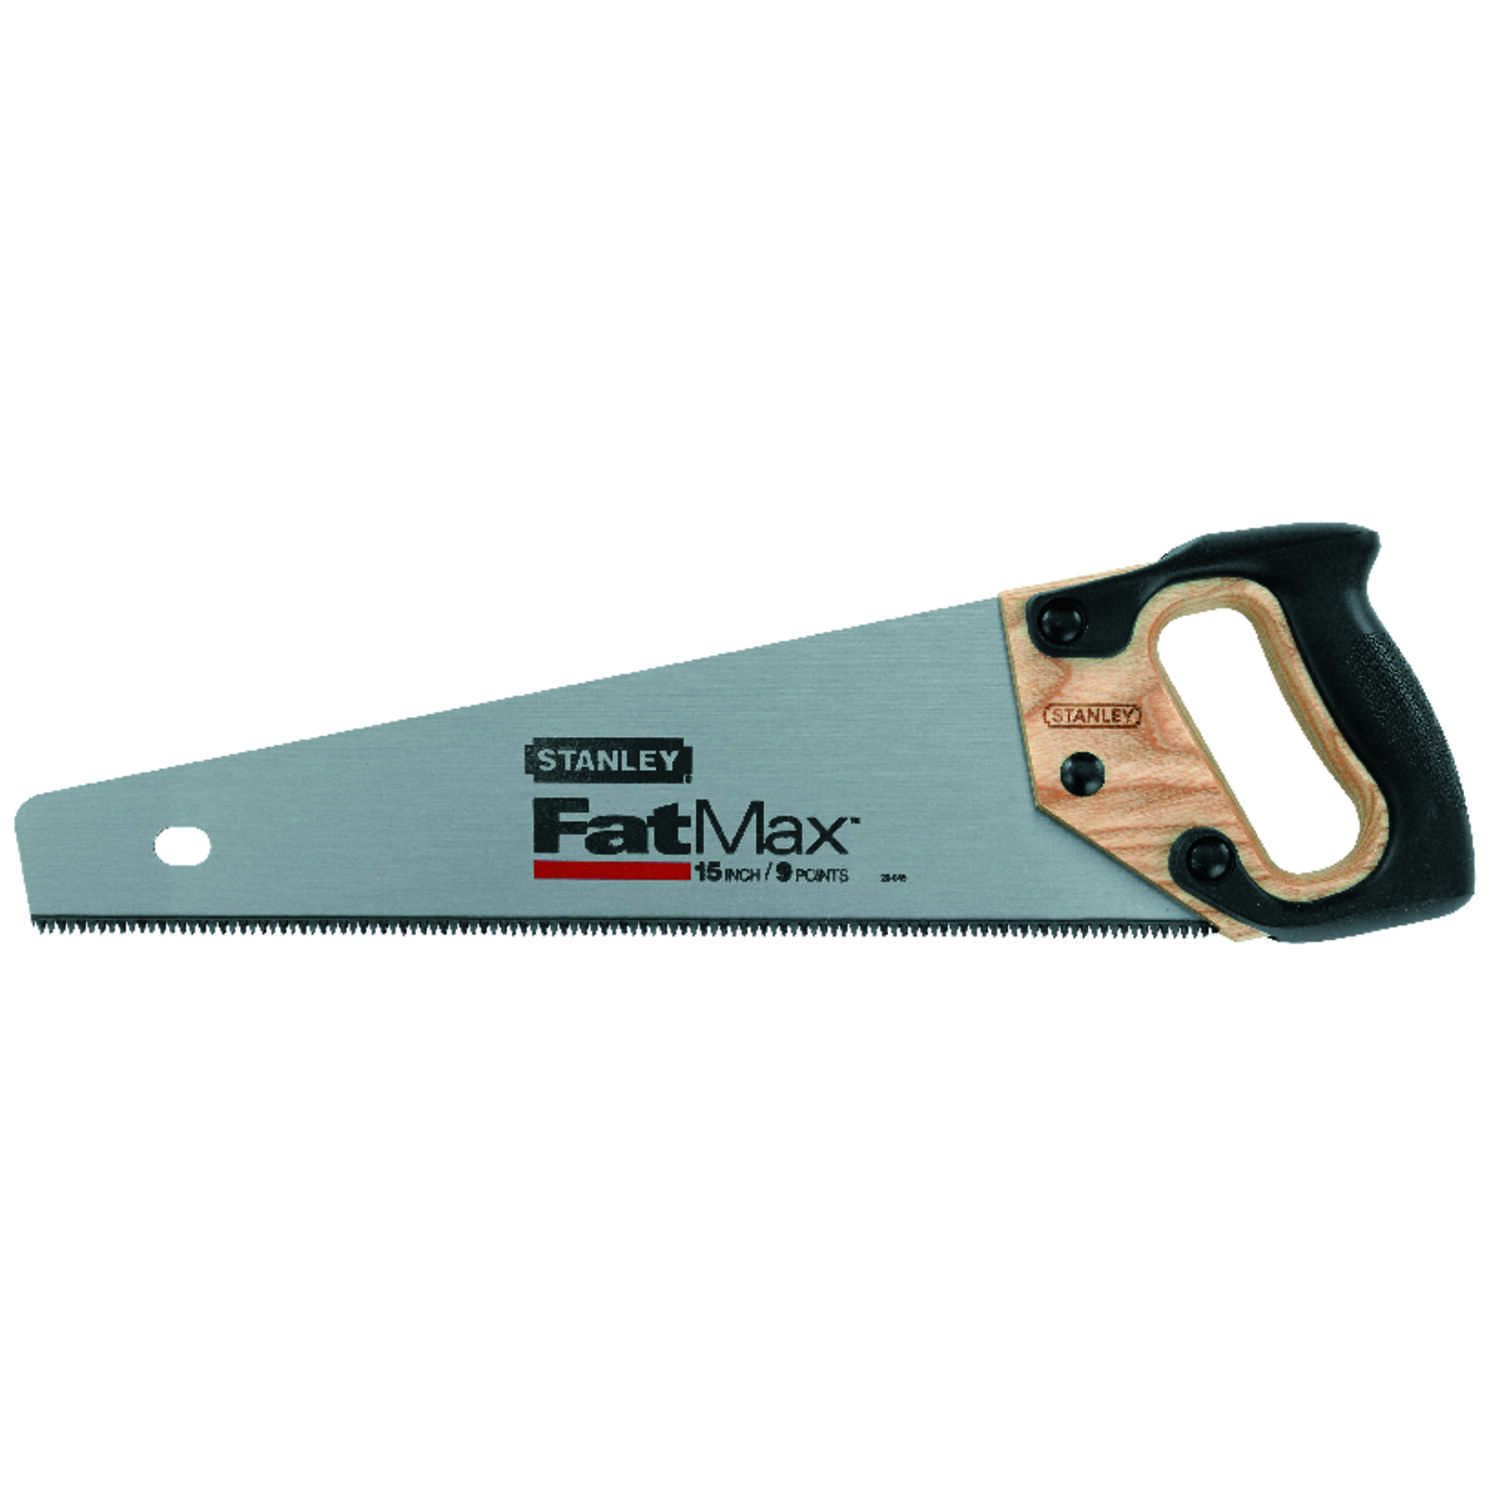 Stanley  FatMax  15 in. Carbon Steel  Hand Saw  8 TPI